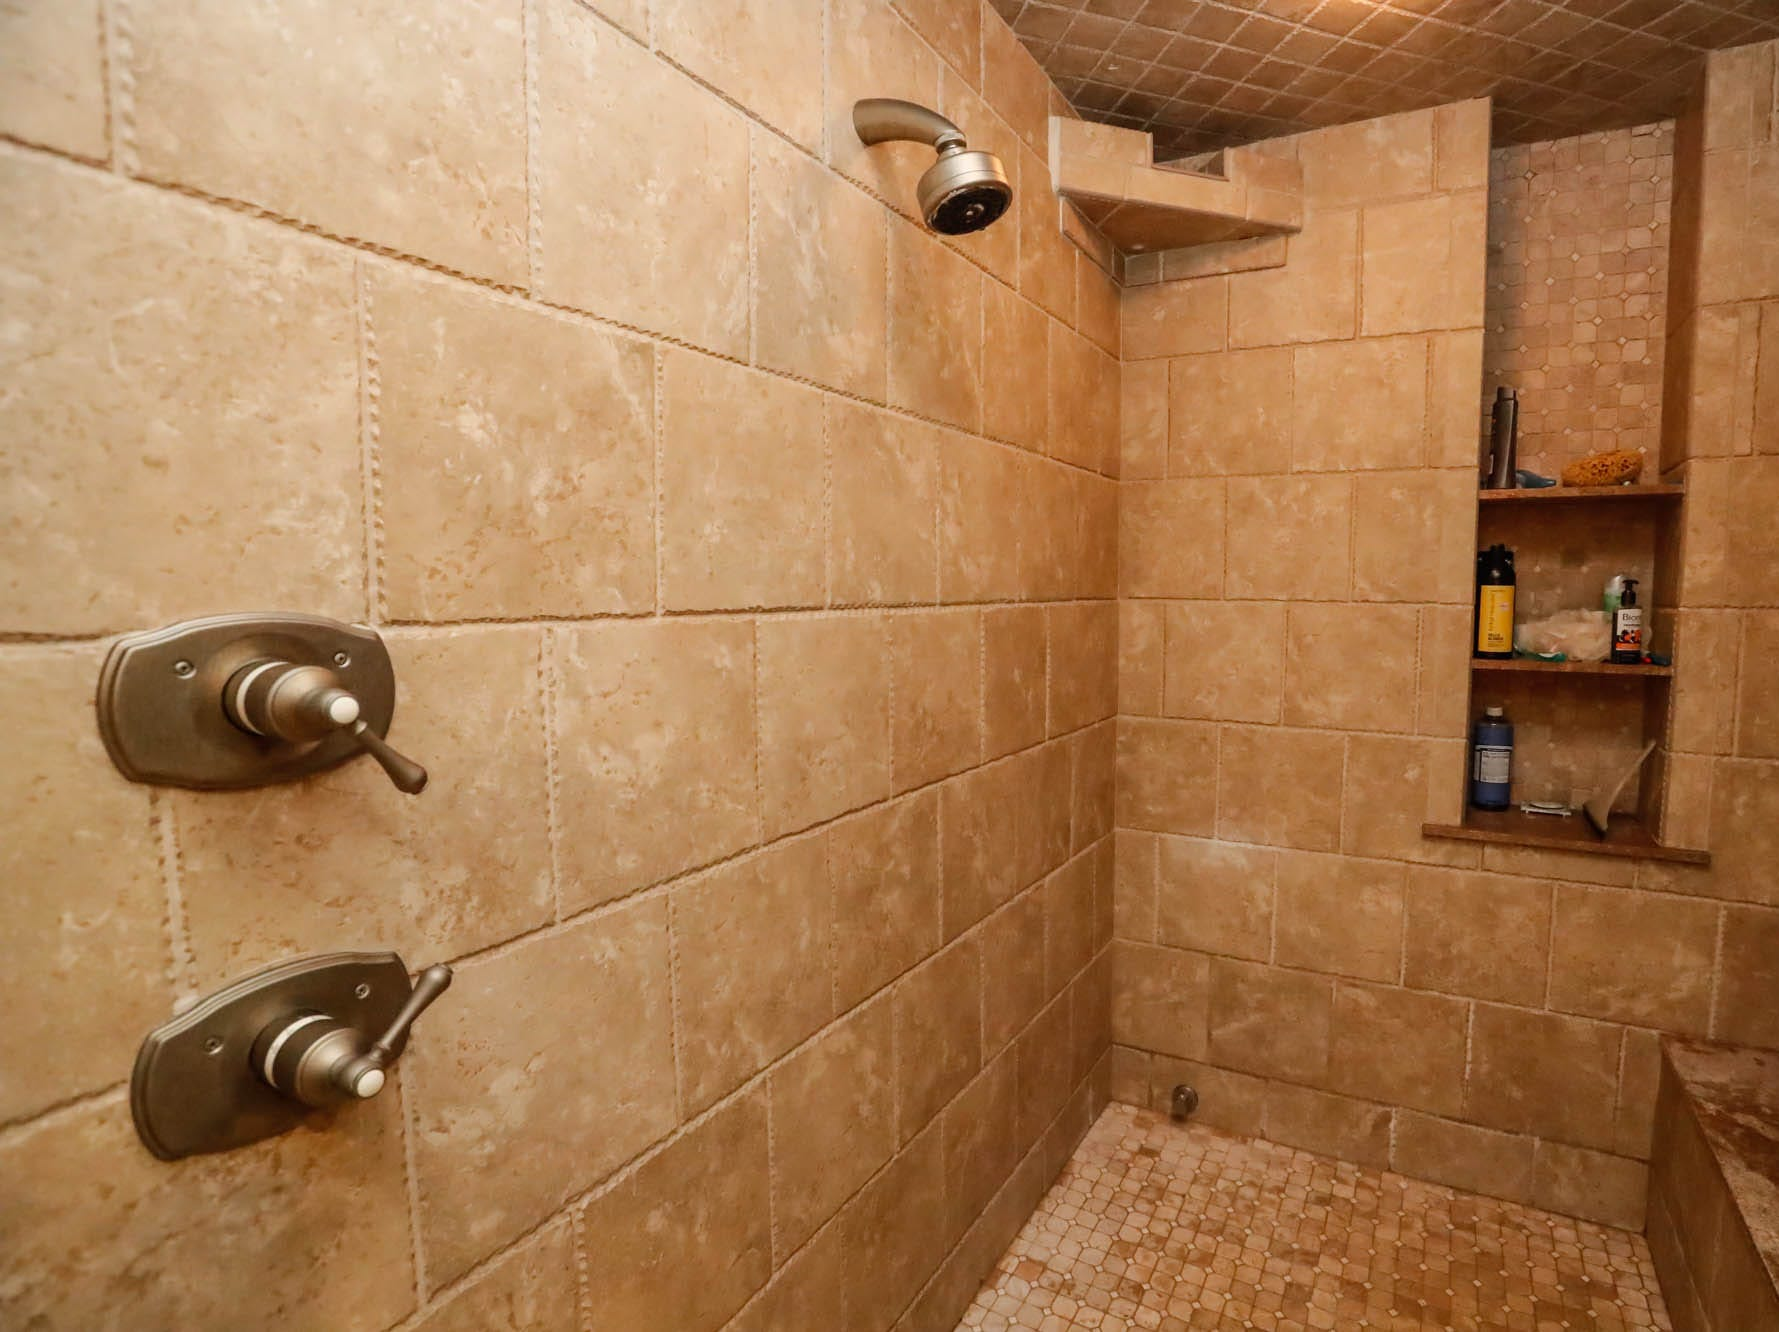 The master bath features a large walk-in shower in a $2 million Bargersville Ind. home up for sale on Wednesday, Jan. 9, 2019. The house sits on 8.1 acres.